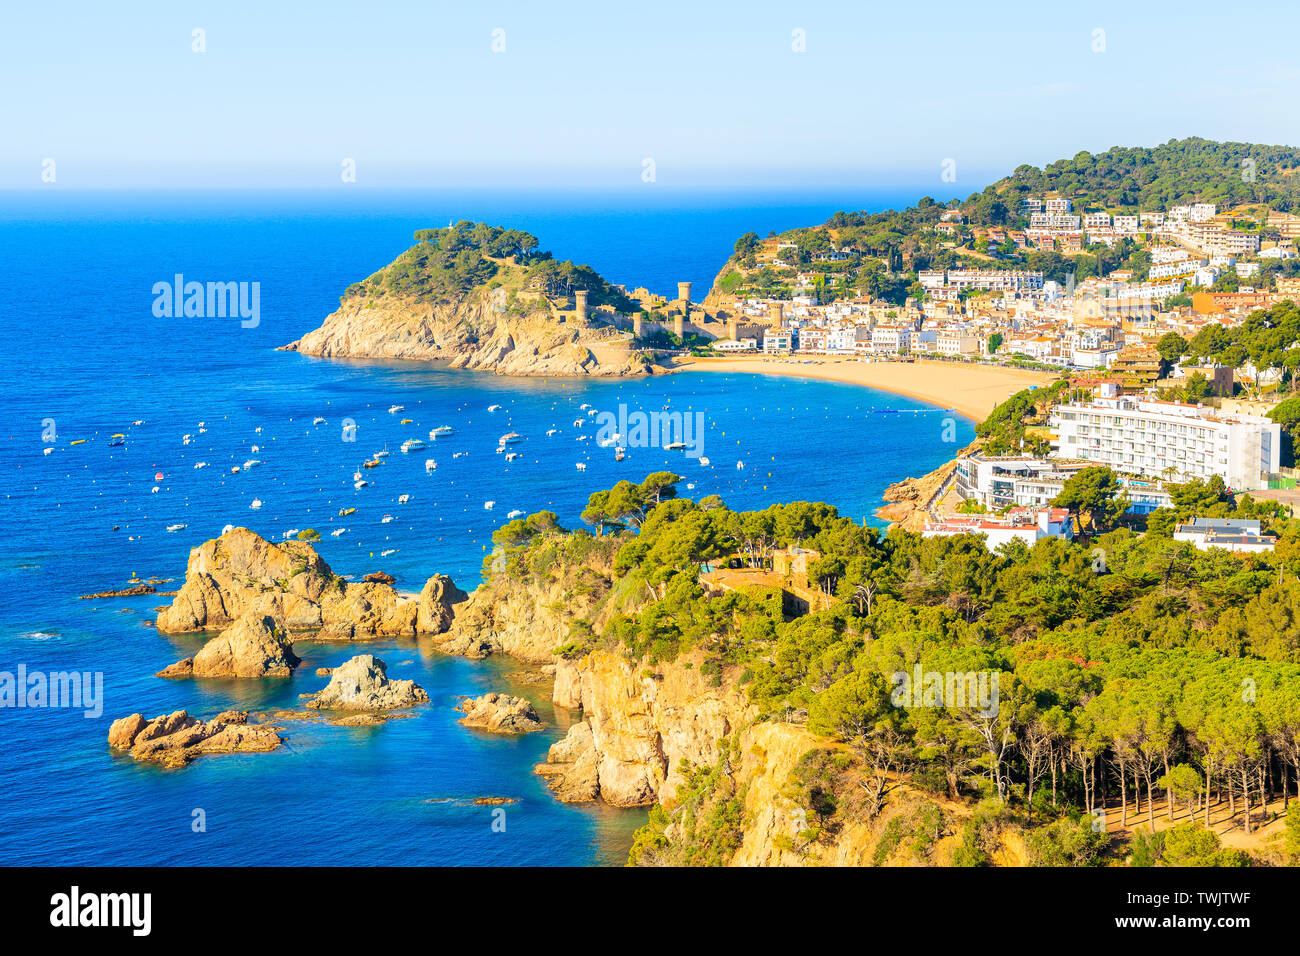 View of Tossa de Mar town and sea from high cliff, Costa Brava, Spain Stock Photo